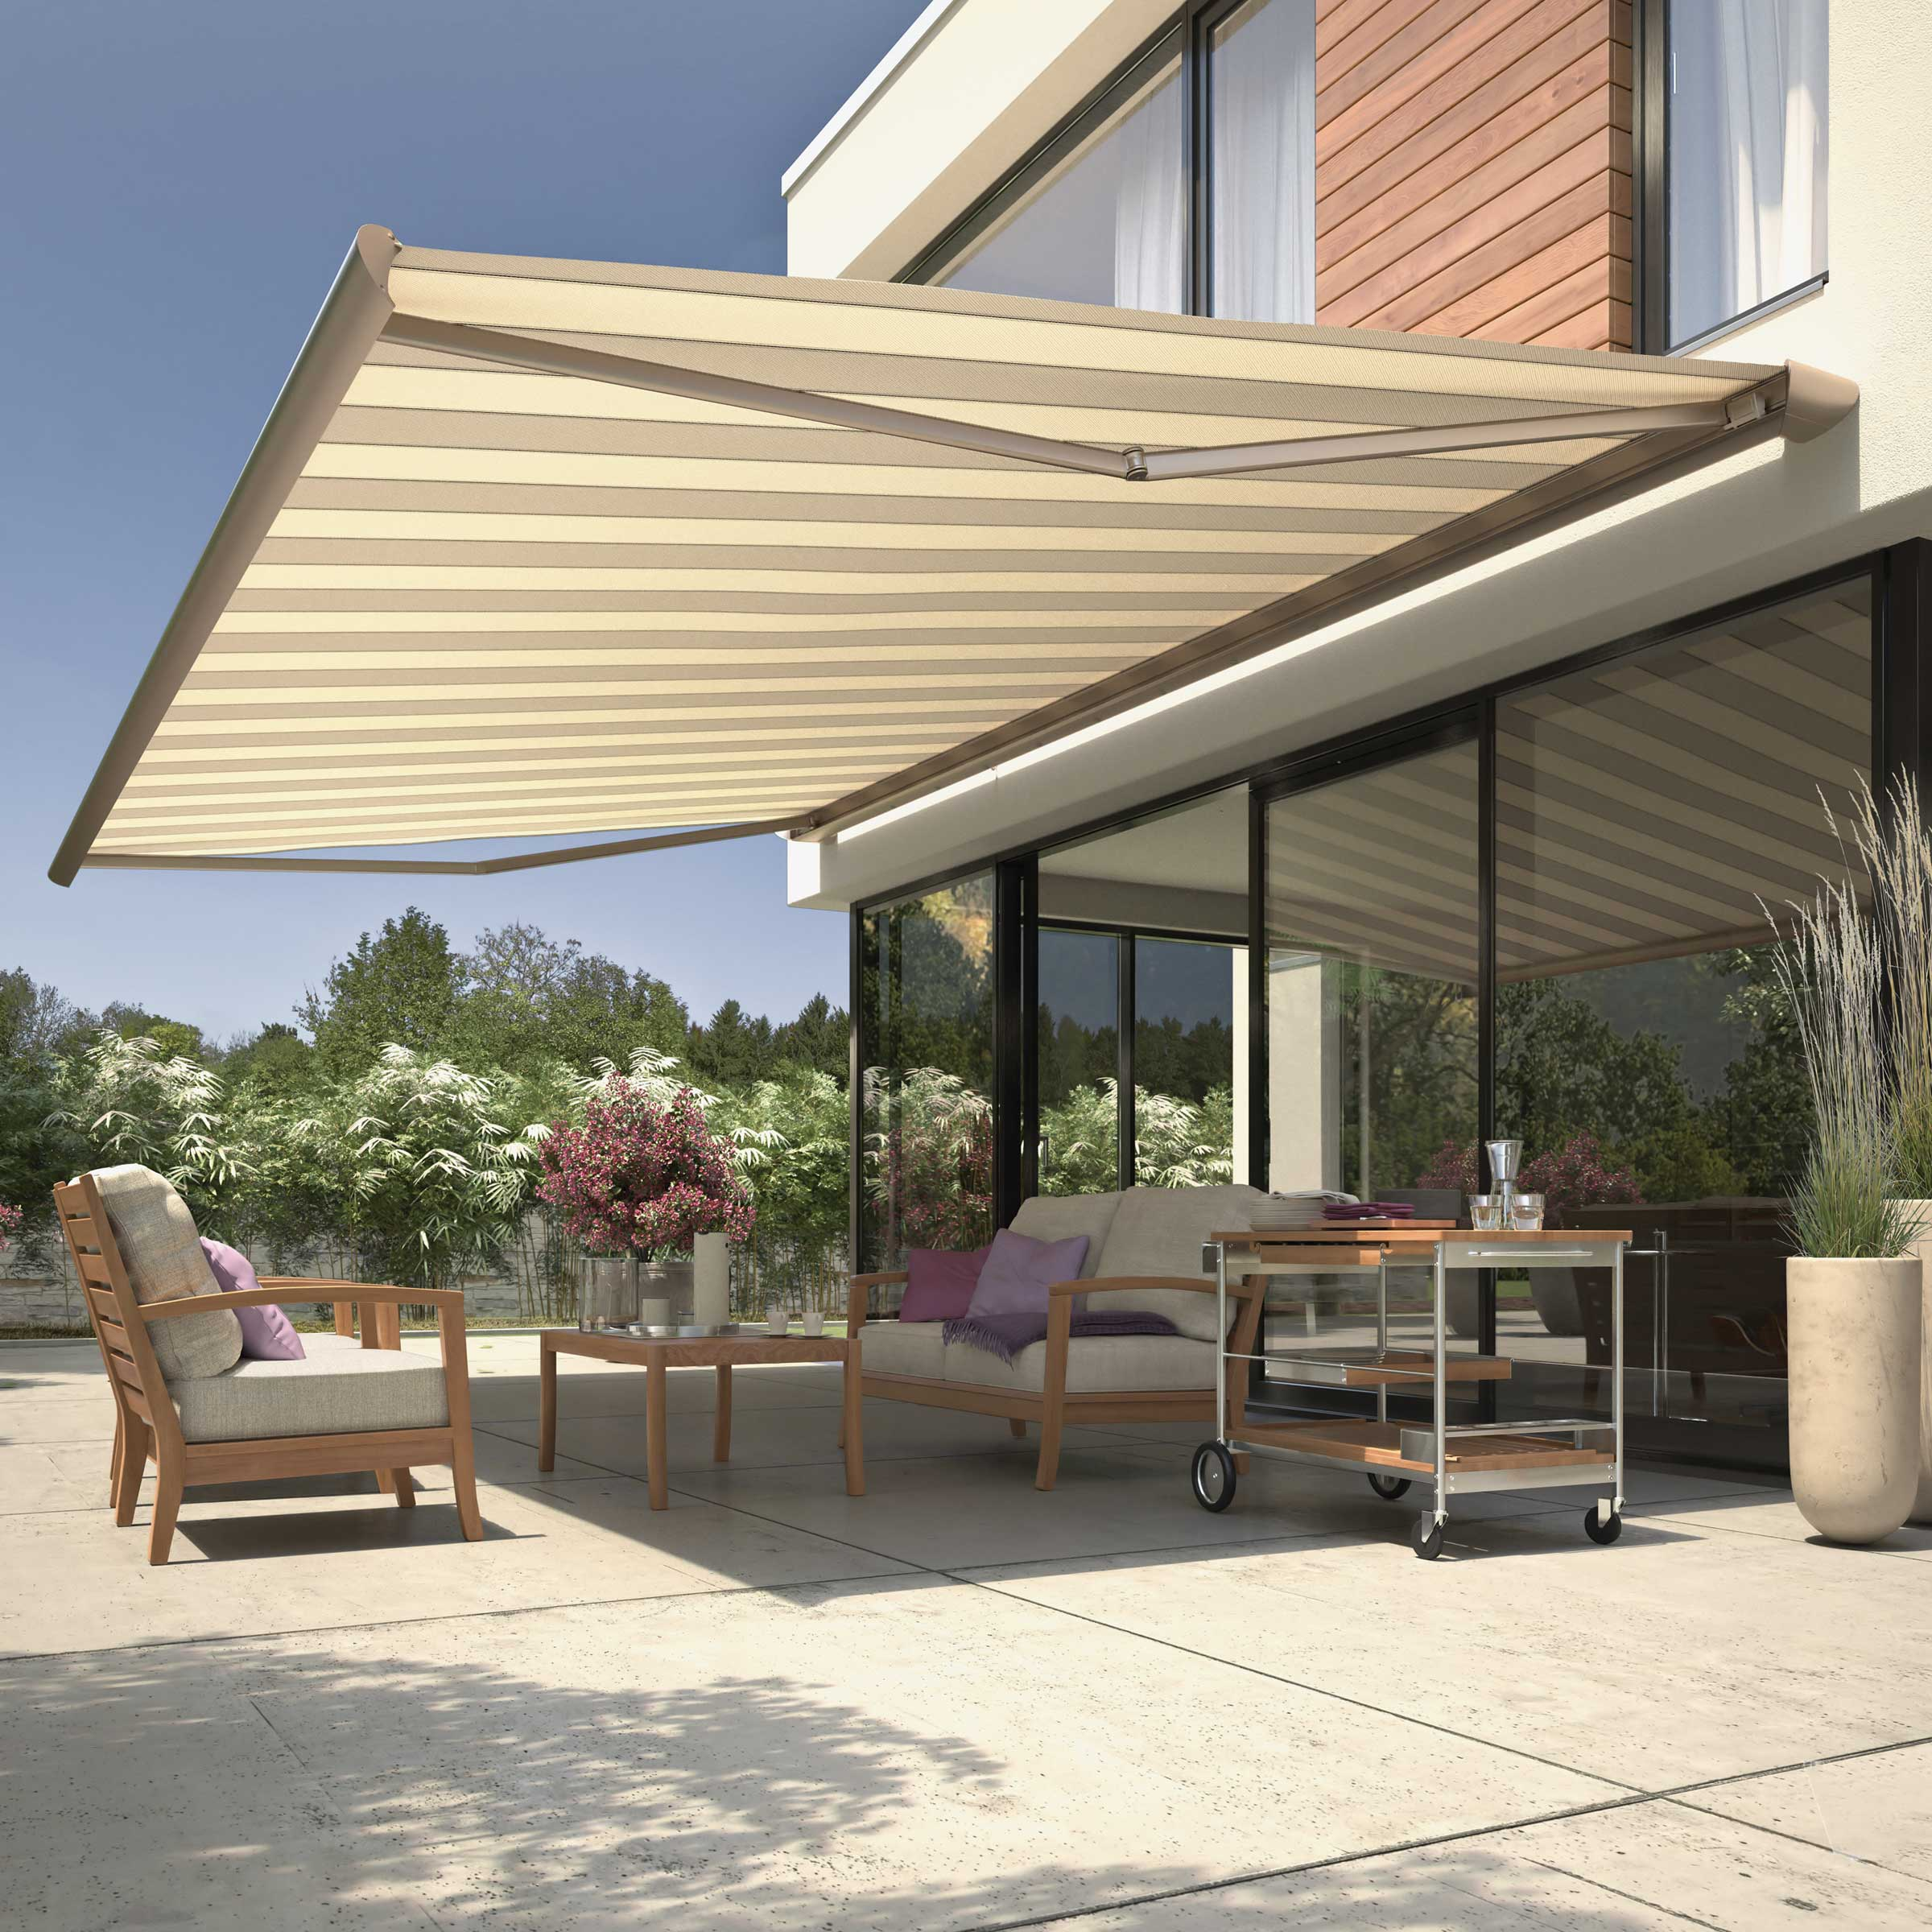 A high quality awning covering a sunny patio area